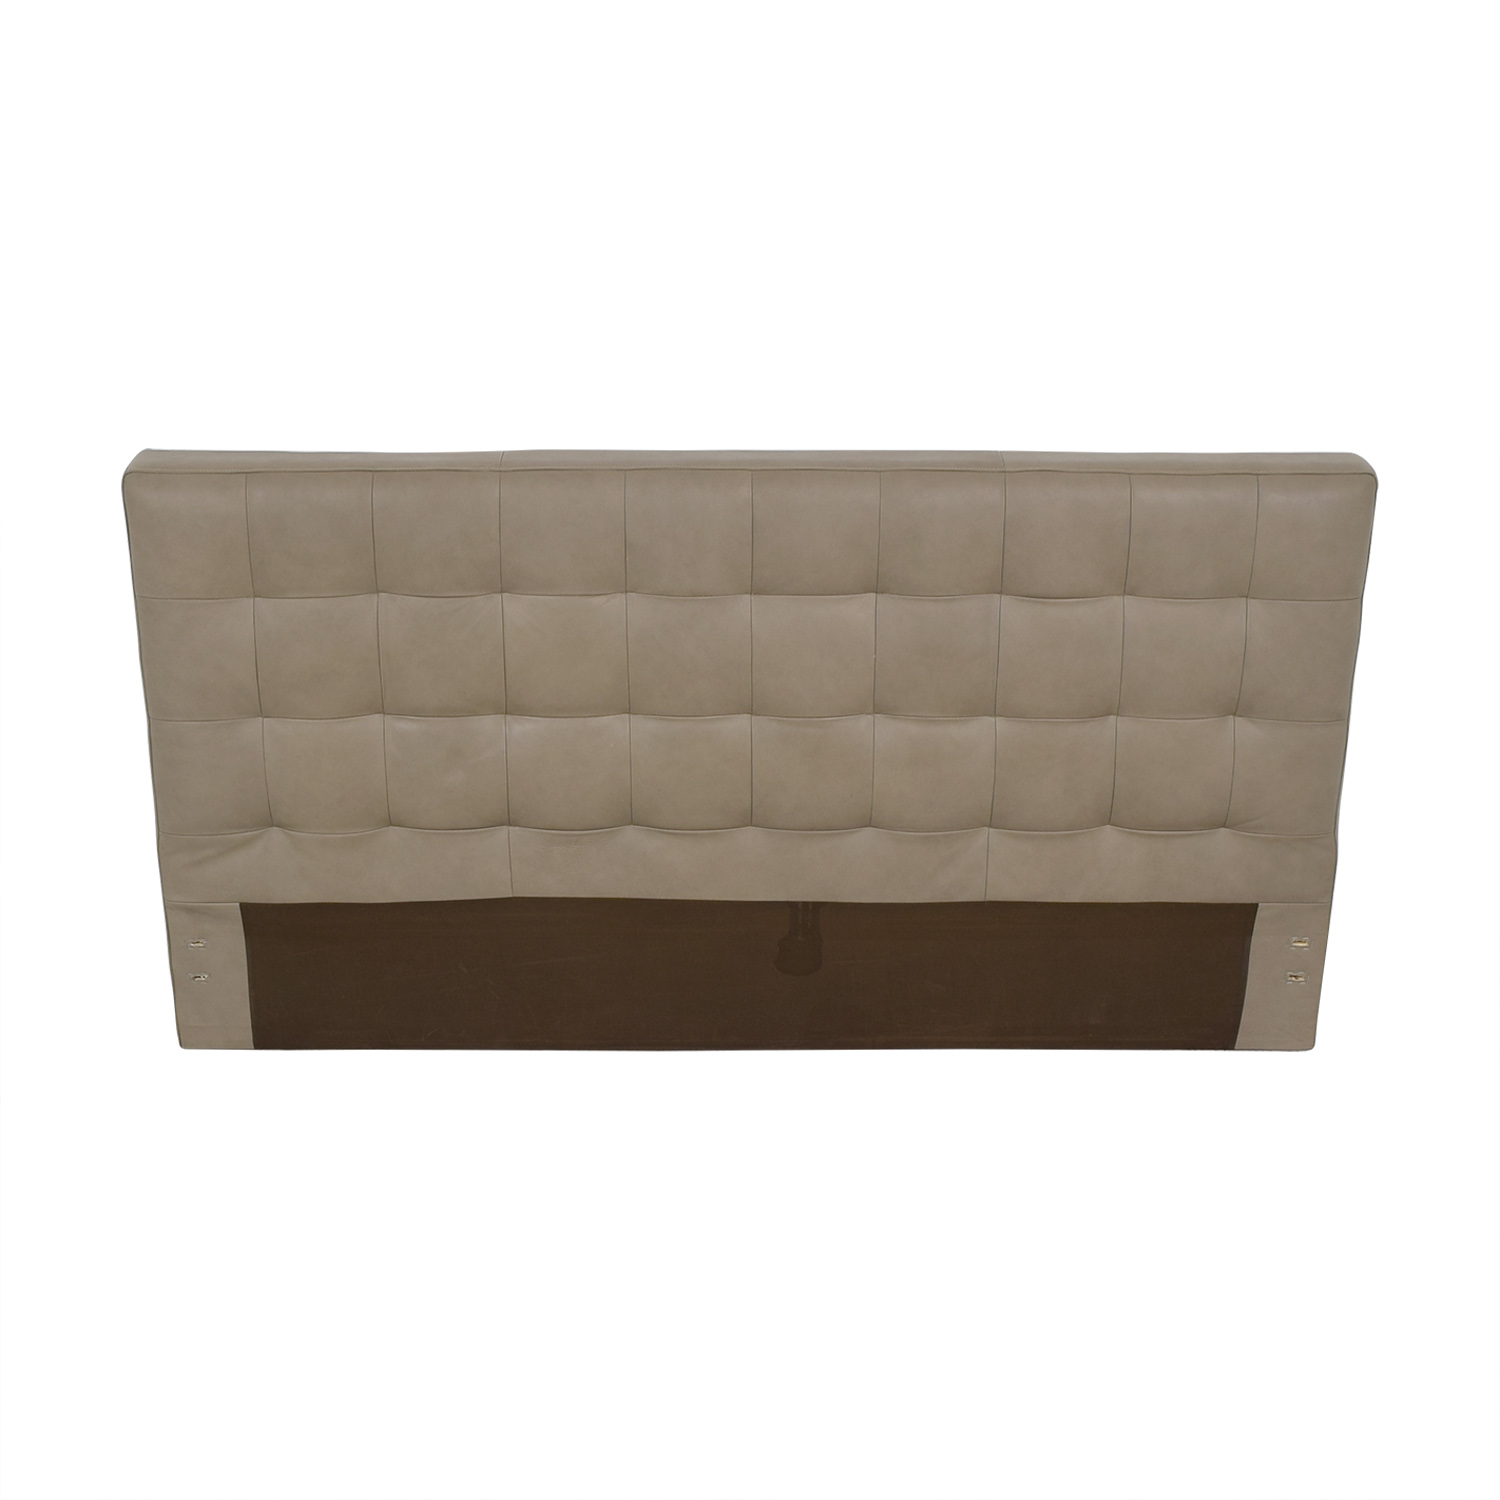 West Elm West Elm Grid Tufted King Headboard pa